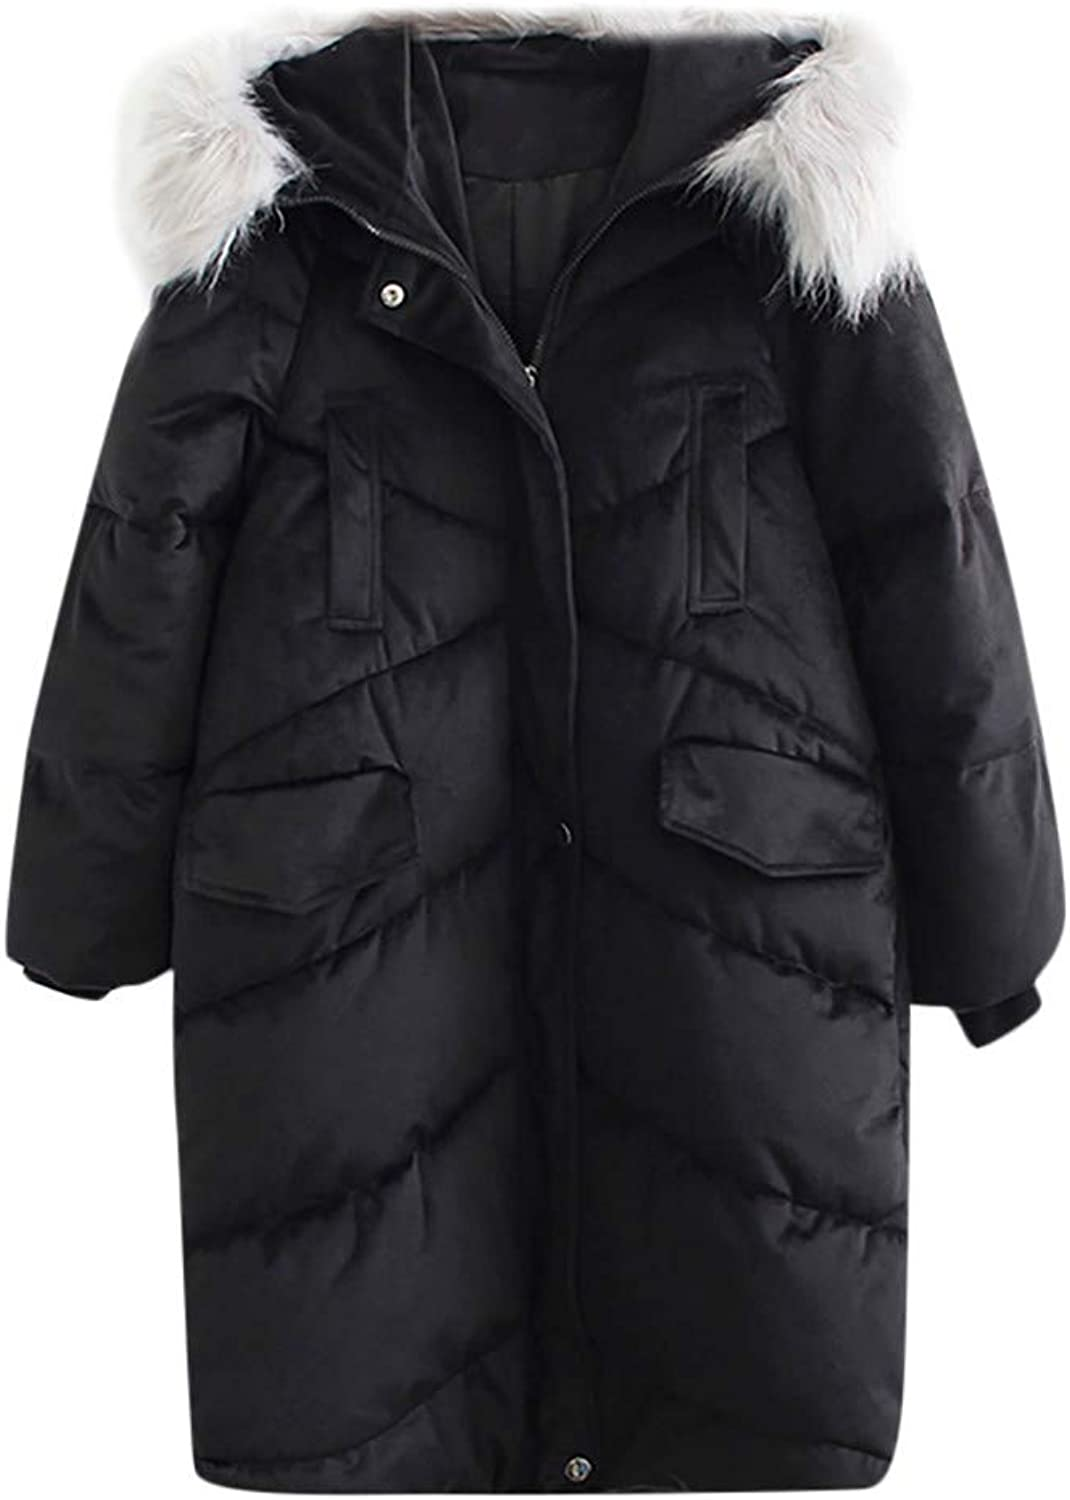 DaySeventh Clothes Women's Large Size Thick Long Hair Large Fur Collar Down Jacket